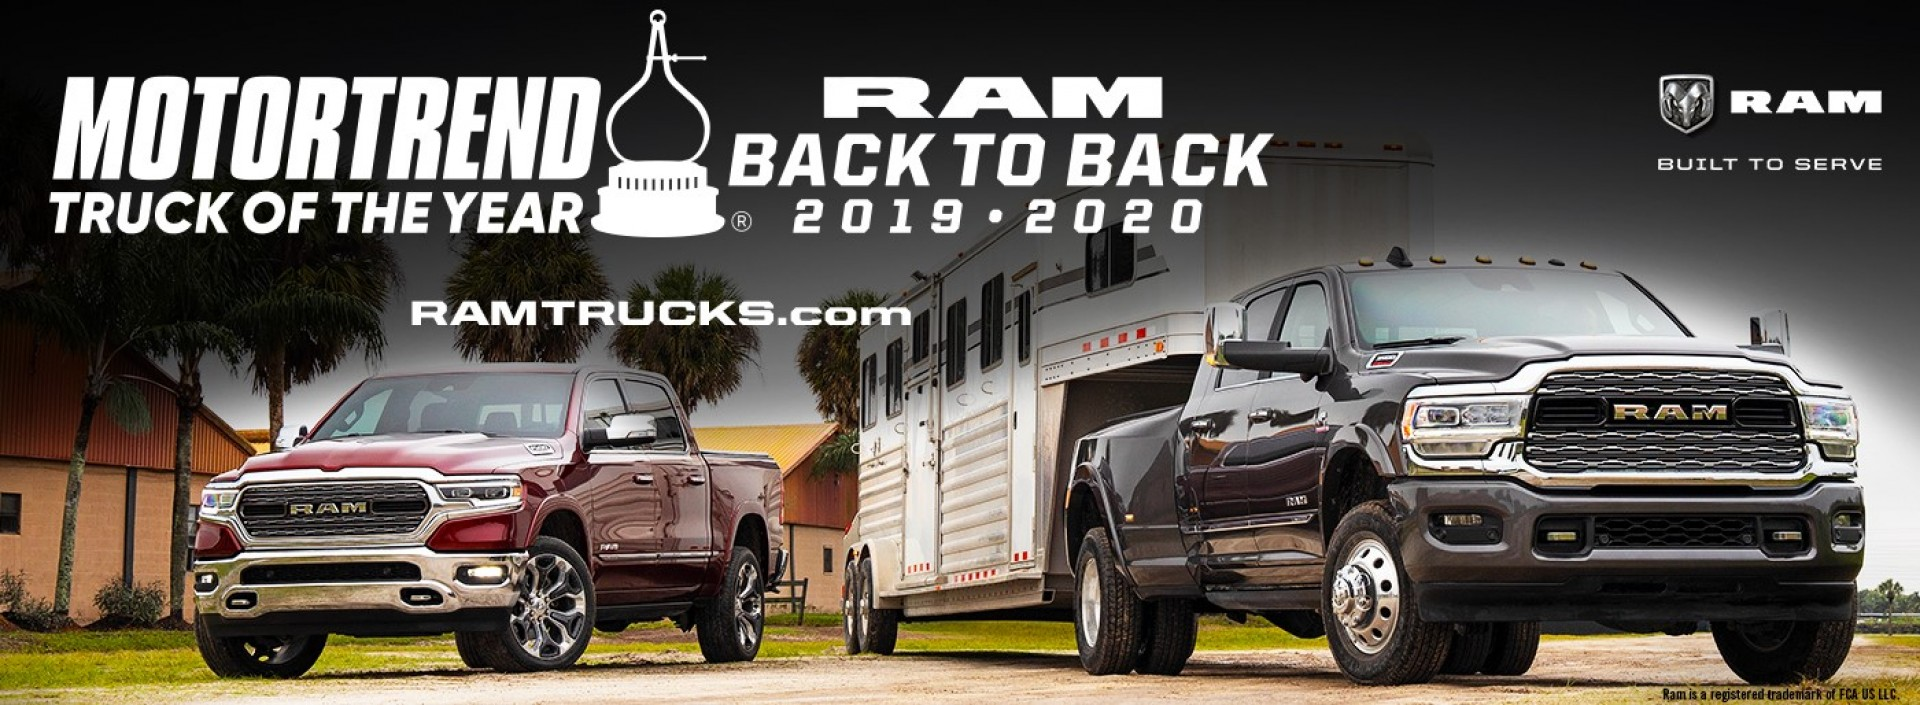 RAM - Motortrend Truck of the Year